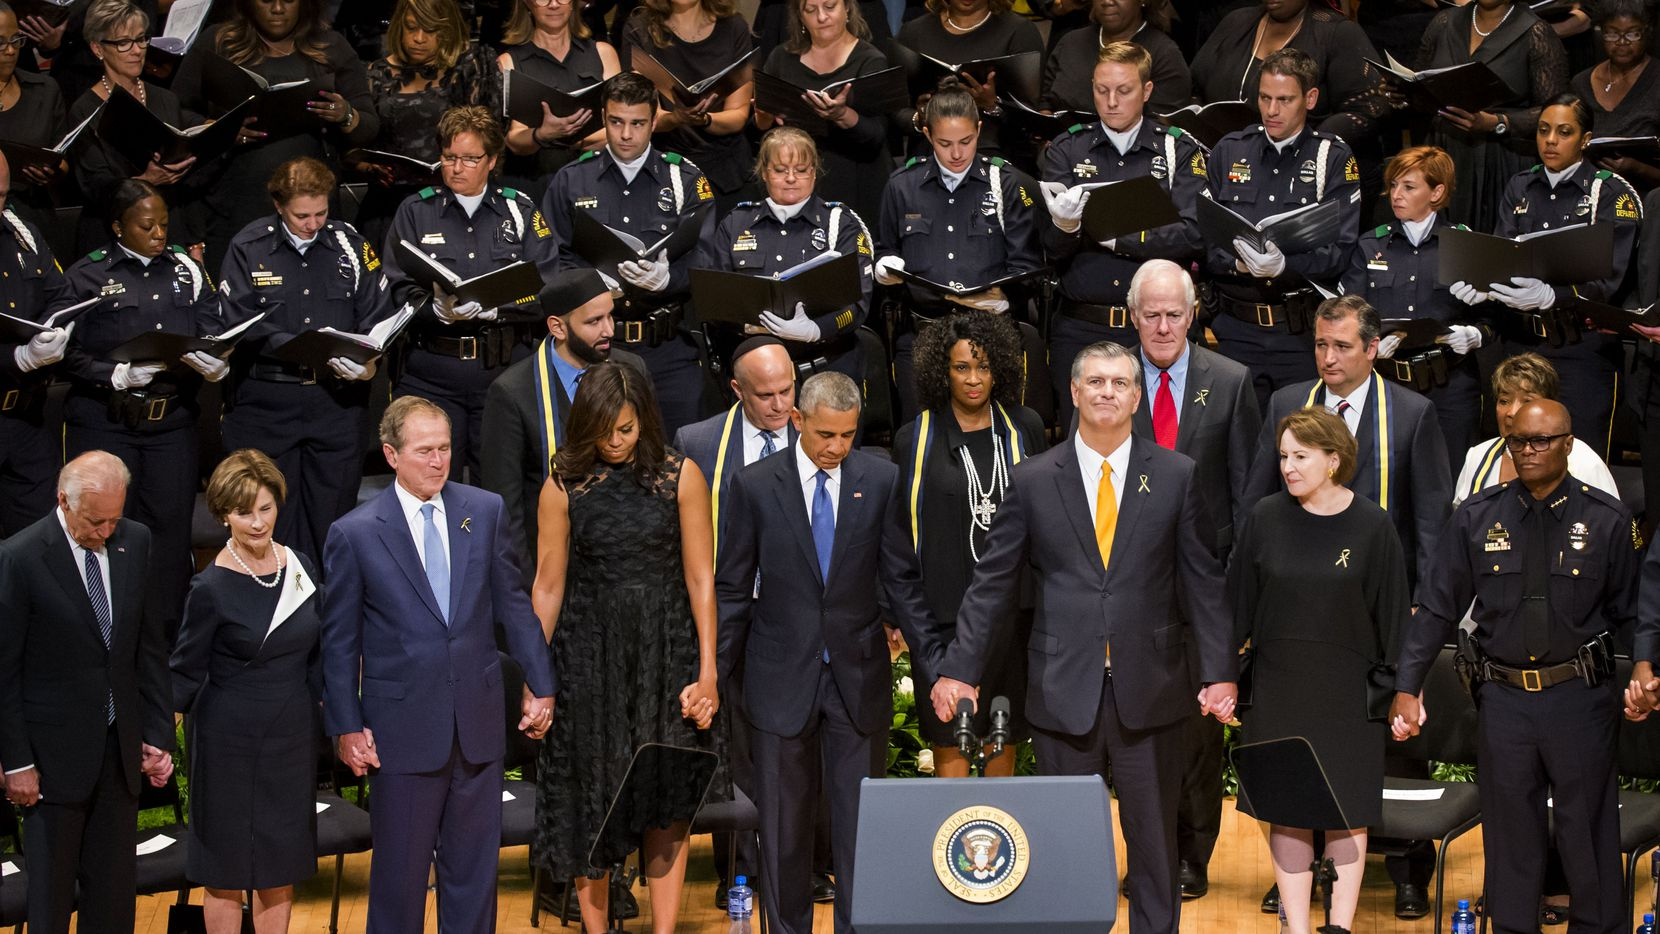 President Barack Obama joins hands with Dallas Mayor Mike Rawlings and other dignitaries during an interfaith memorial service at the Morton H. Meyerson Symphony Center in Dallas for the five law enforcement officers killed last week. In the photo, from left, are Vice President Joe Biden, former first lady Laura Bush, former President George W. Bush, First Lady Michelle Obama, President Barack Obama, Dallas Mayor Mike Rawlings and his wife, Micki, and Dallas police chief David Brown.